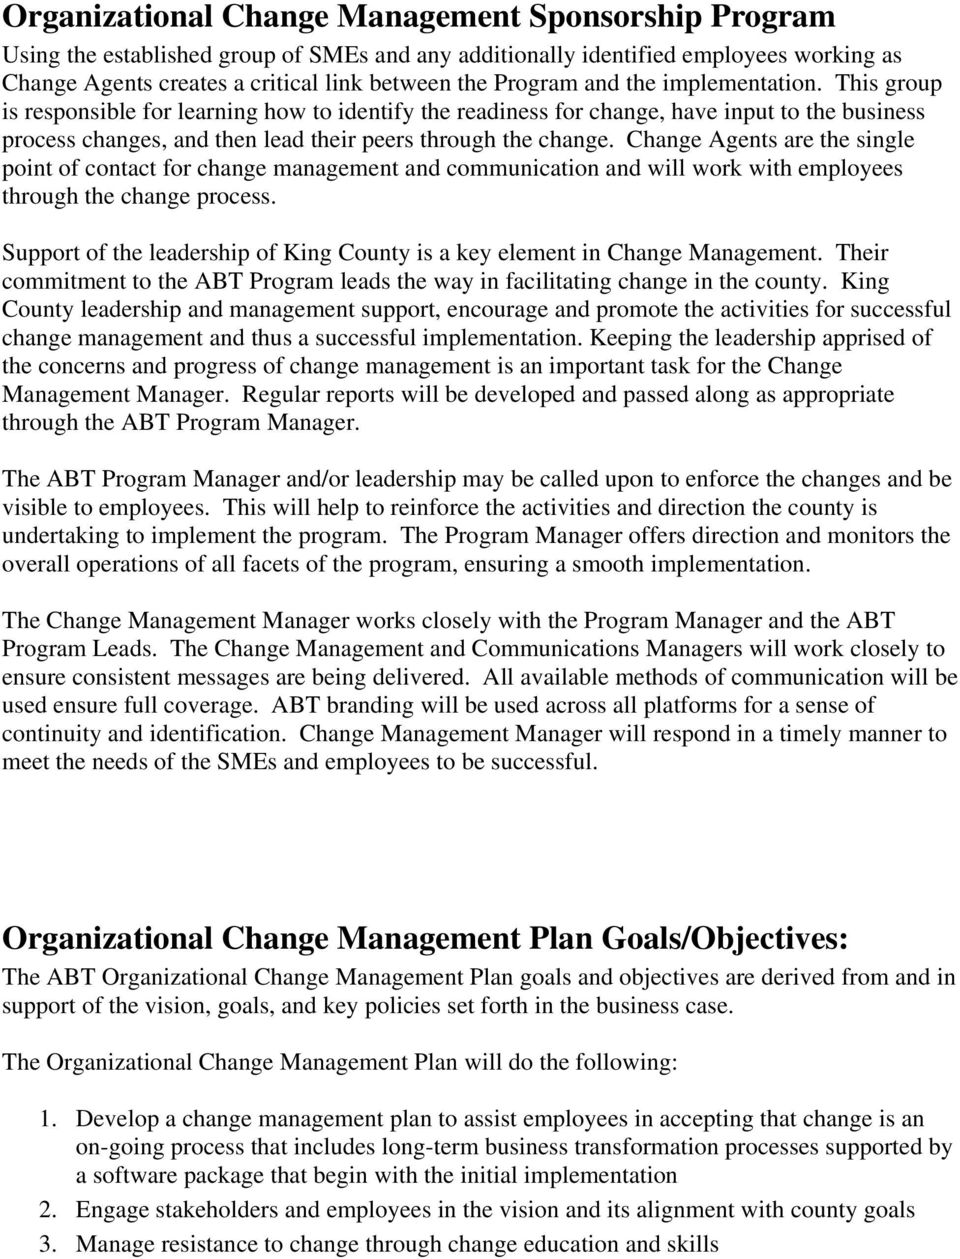 Change Agents are the single point of contact for change management and communication and will work with employees through the change process.